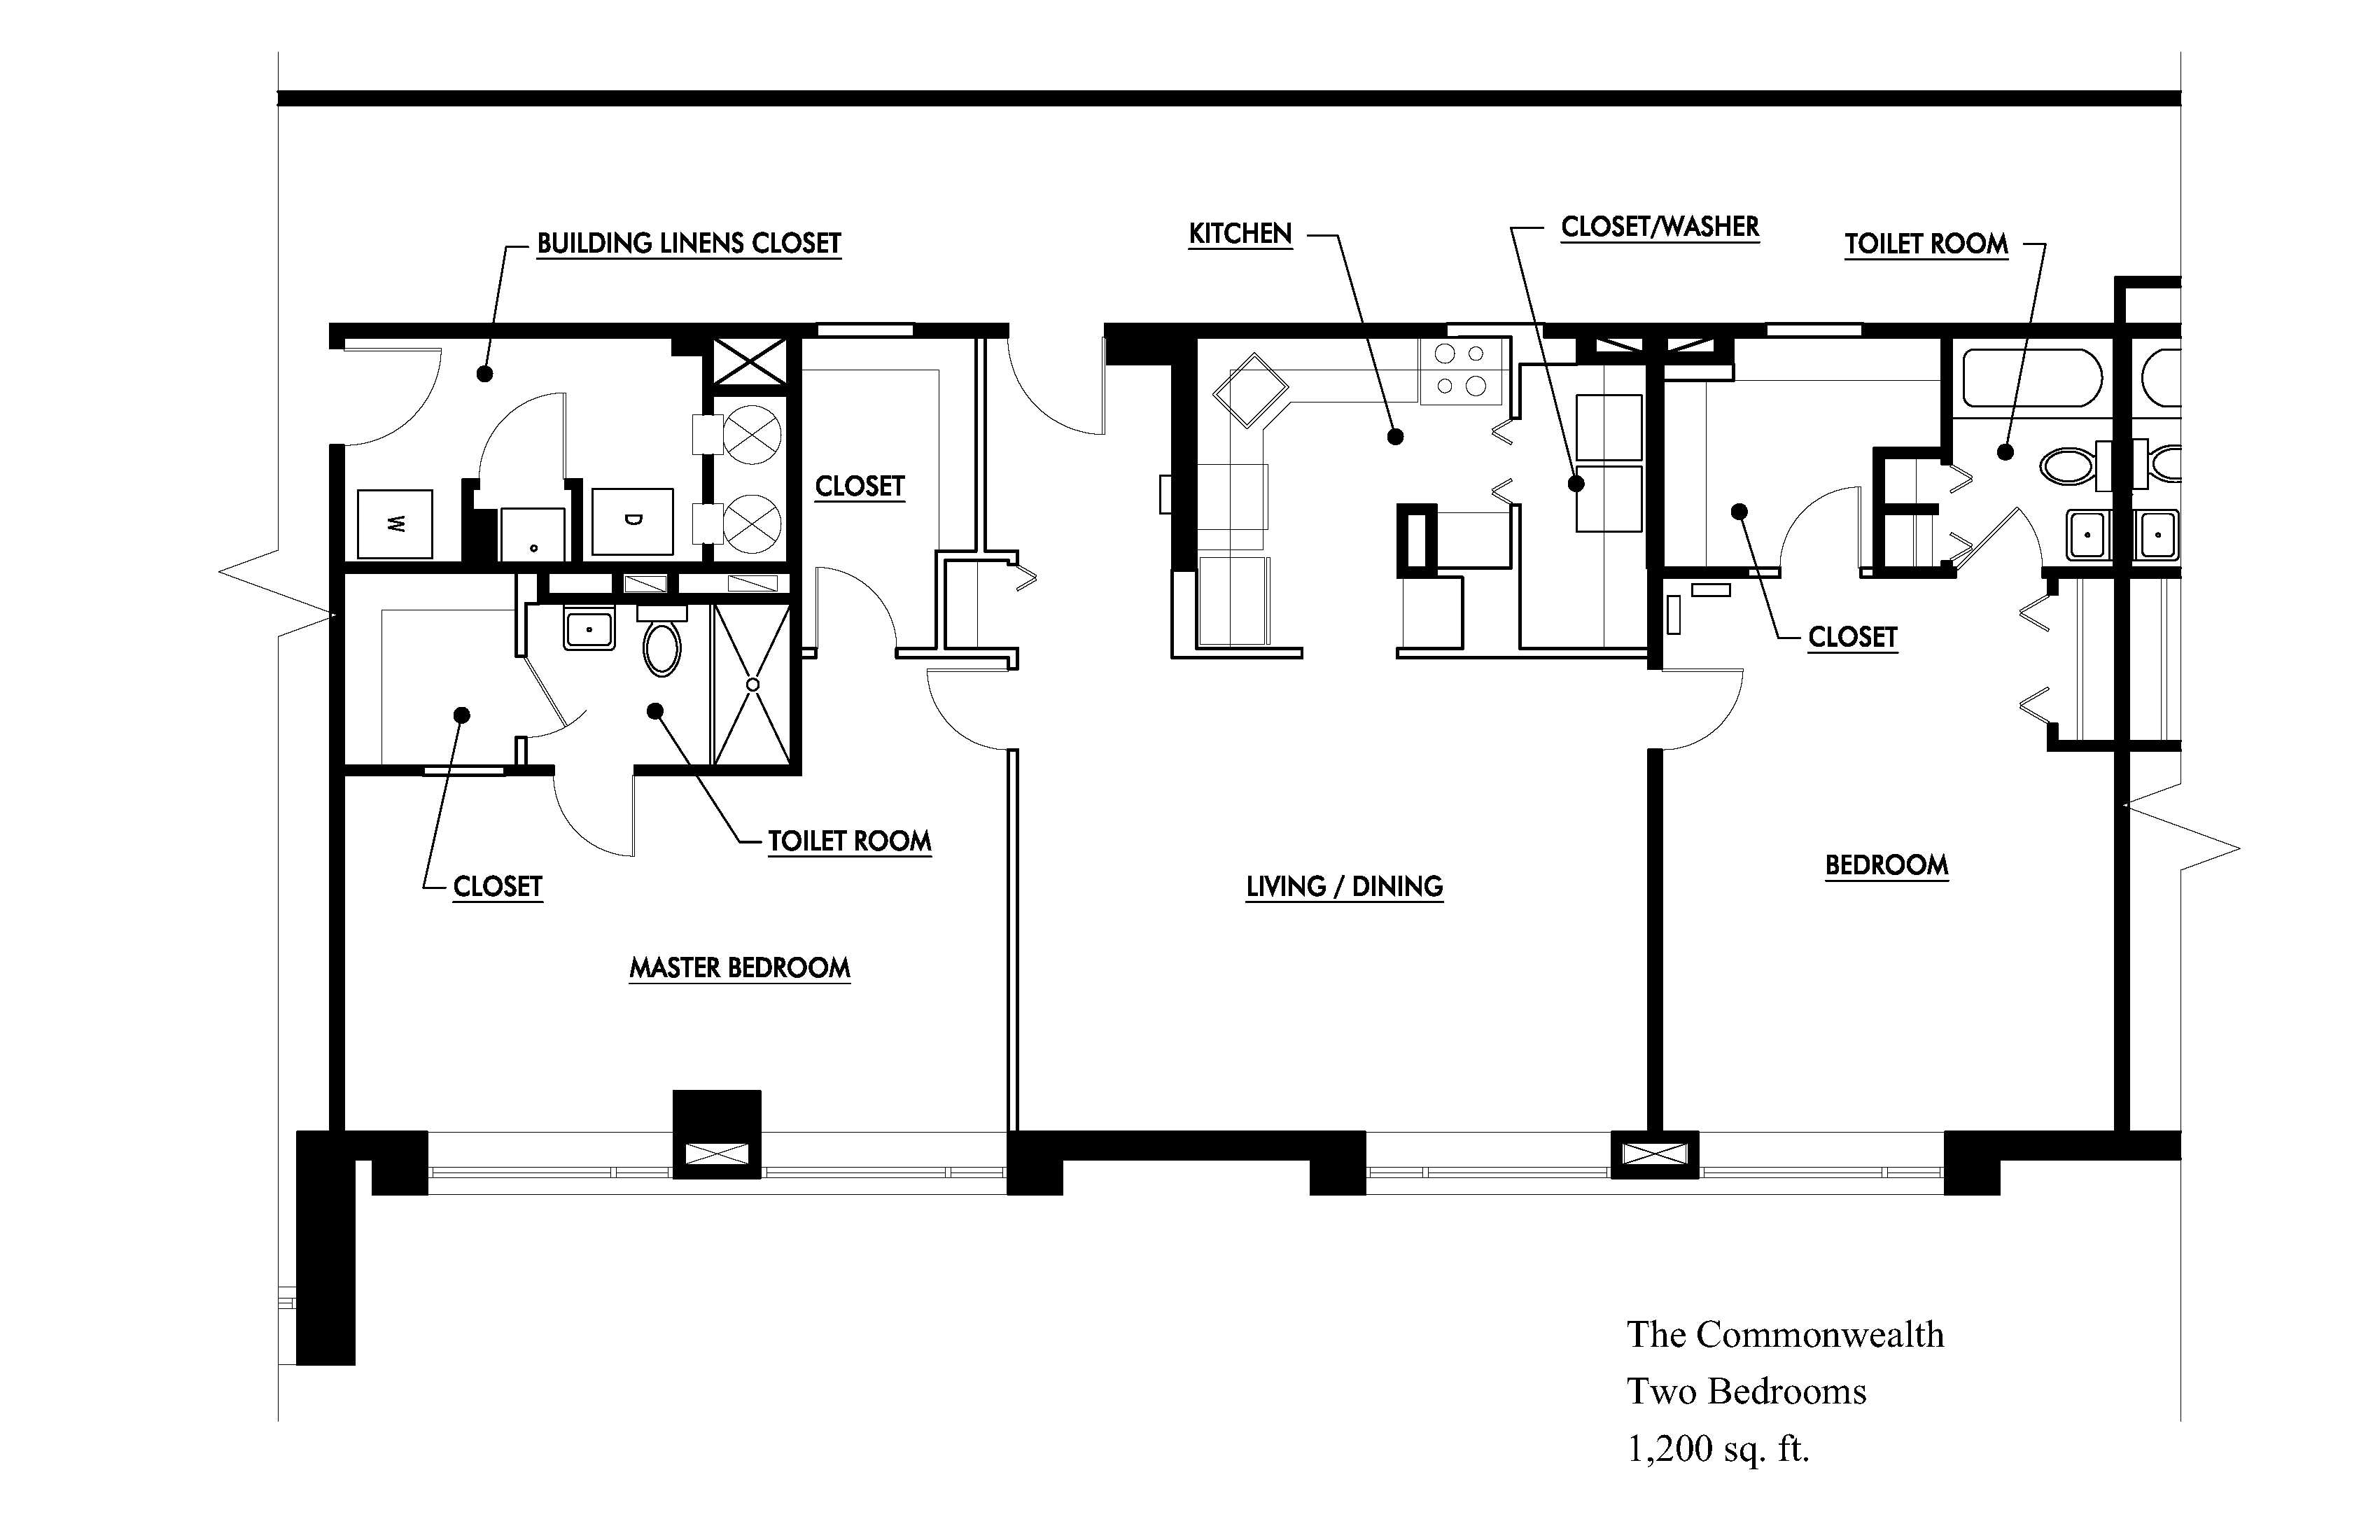 800 sq ft house 1200 sq ft house plans 1200 sq ft floor for 800 sq ft home plans